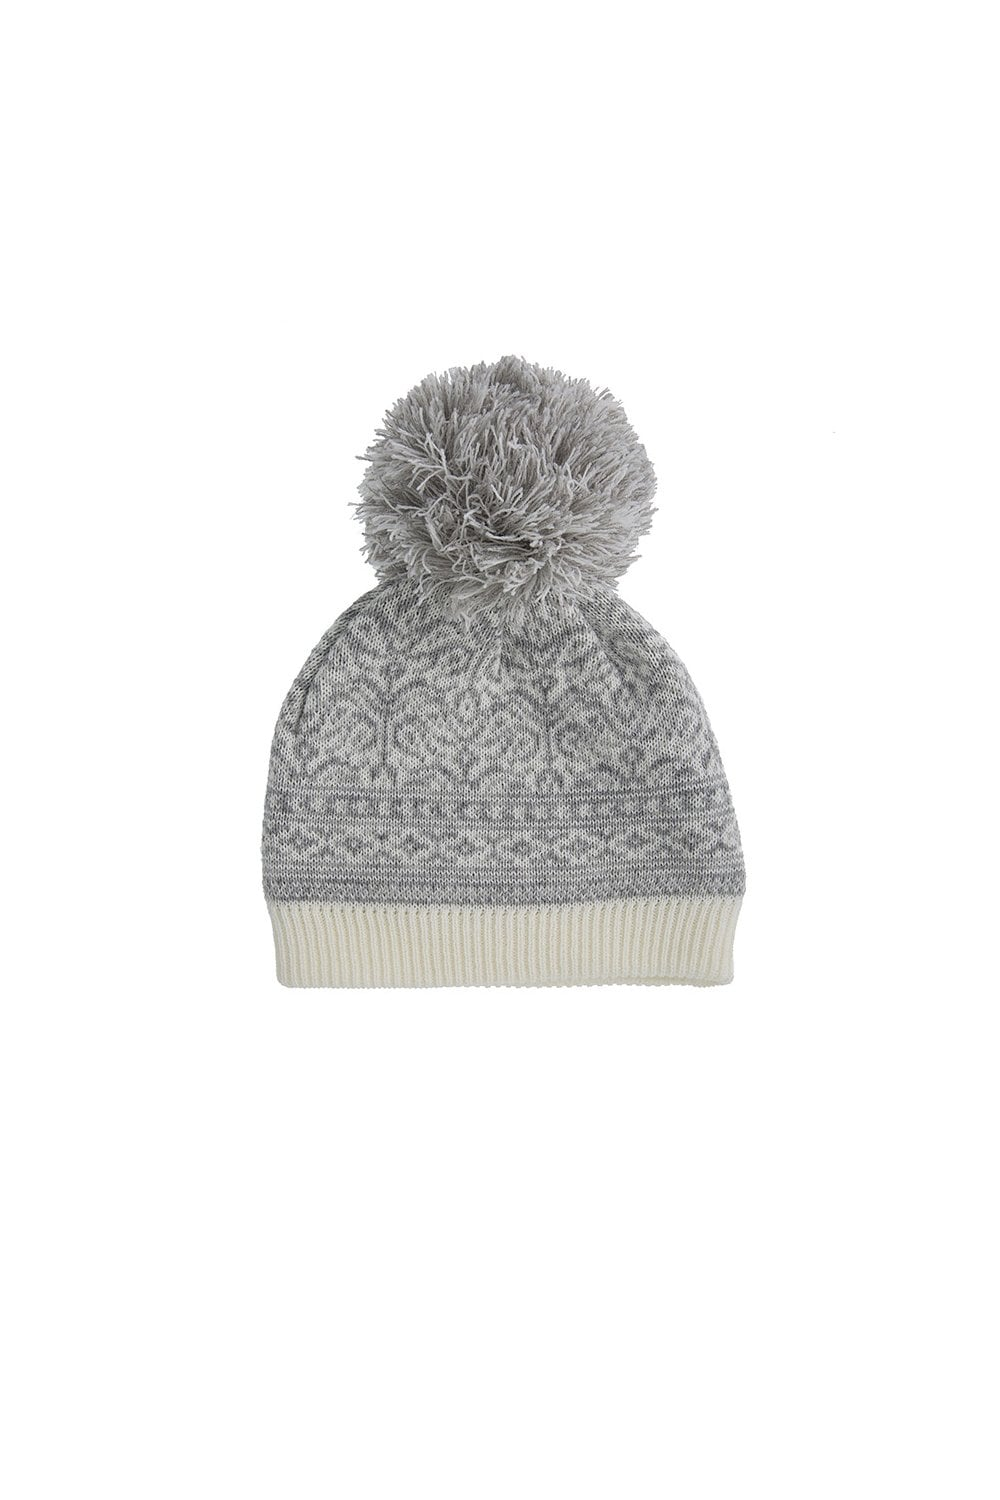 Dents Womens Nordic Pattern Hat with Pom Pom - Winter White Silver ... 20df3f19e02